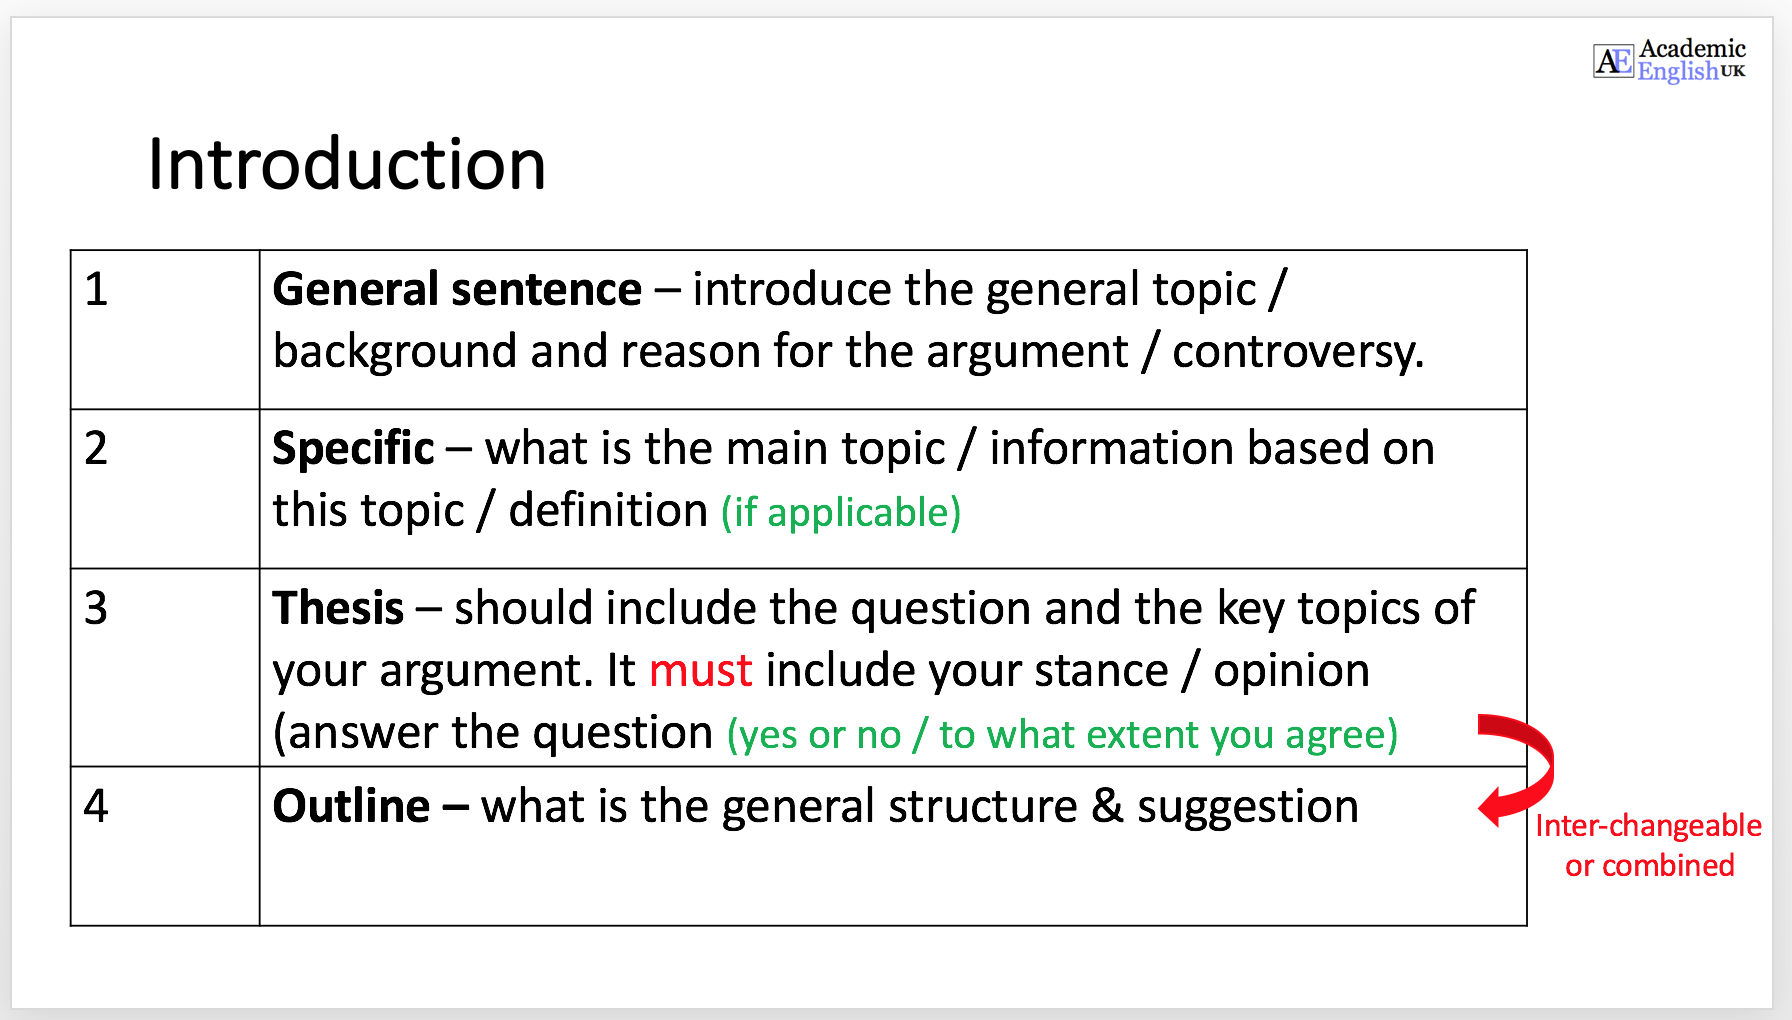 How to write an introduction to a dissertation proposal